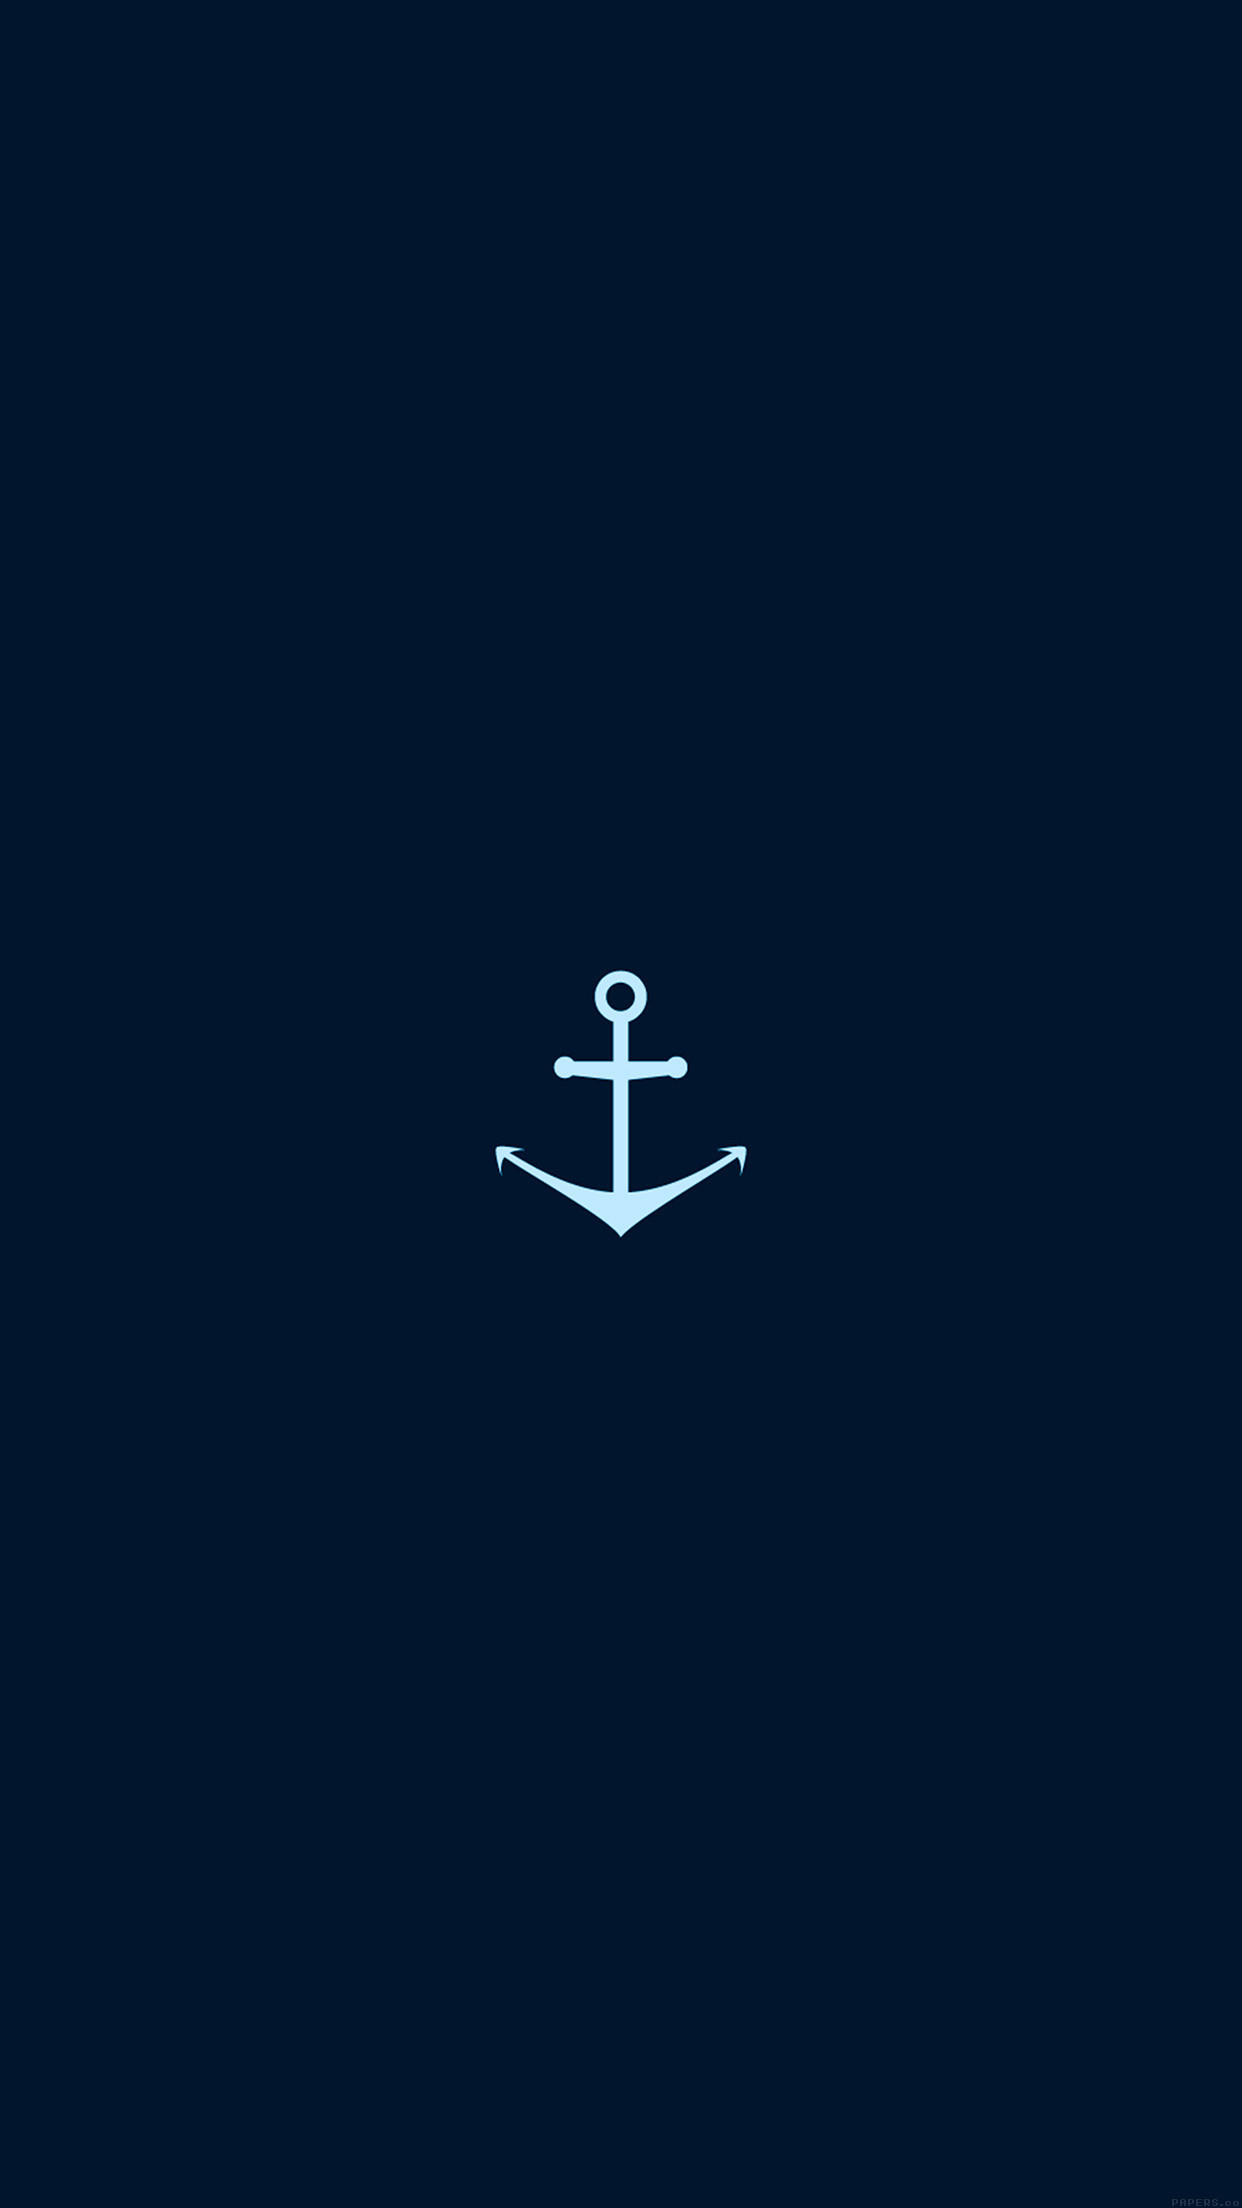 Anchor Wallpaper for iPhone (57+ images)